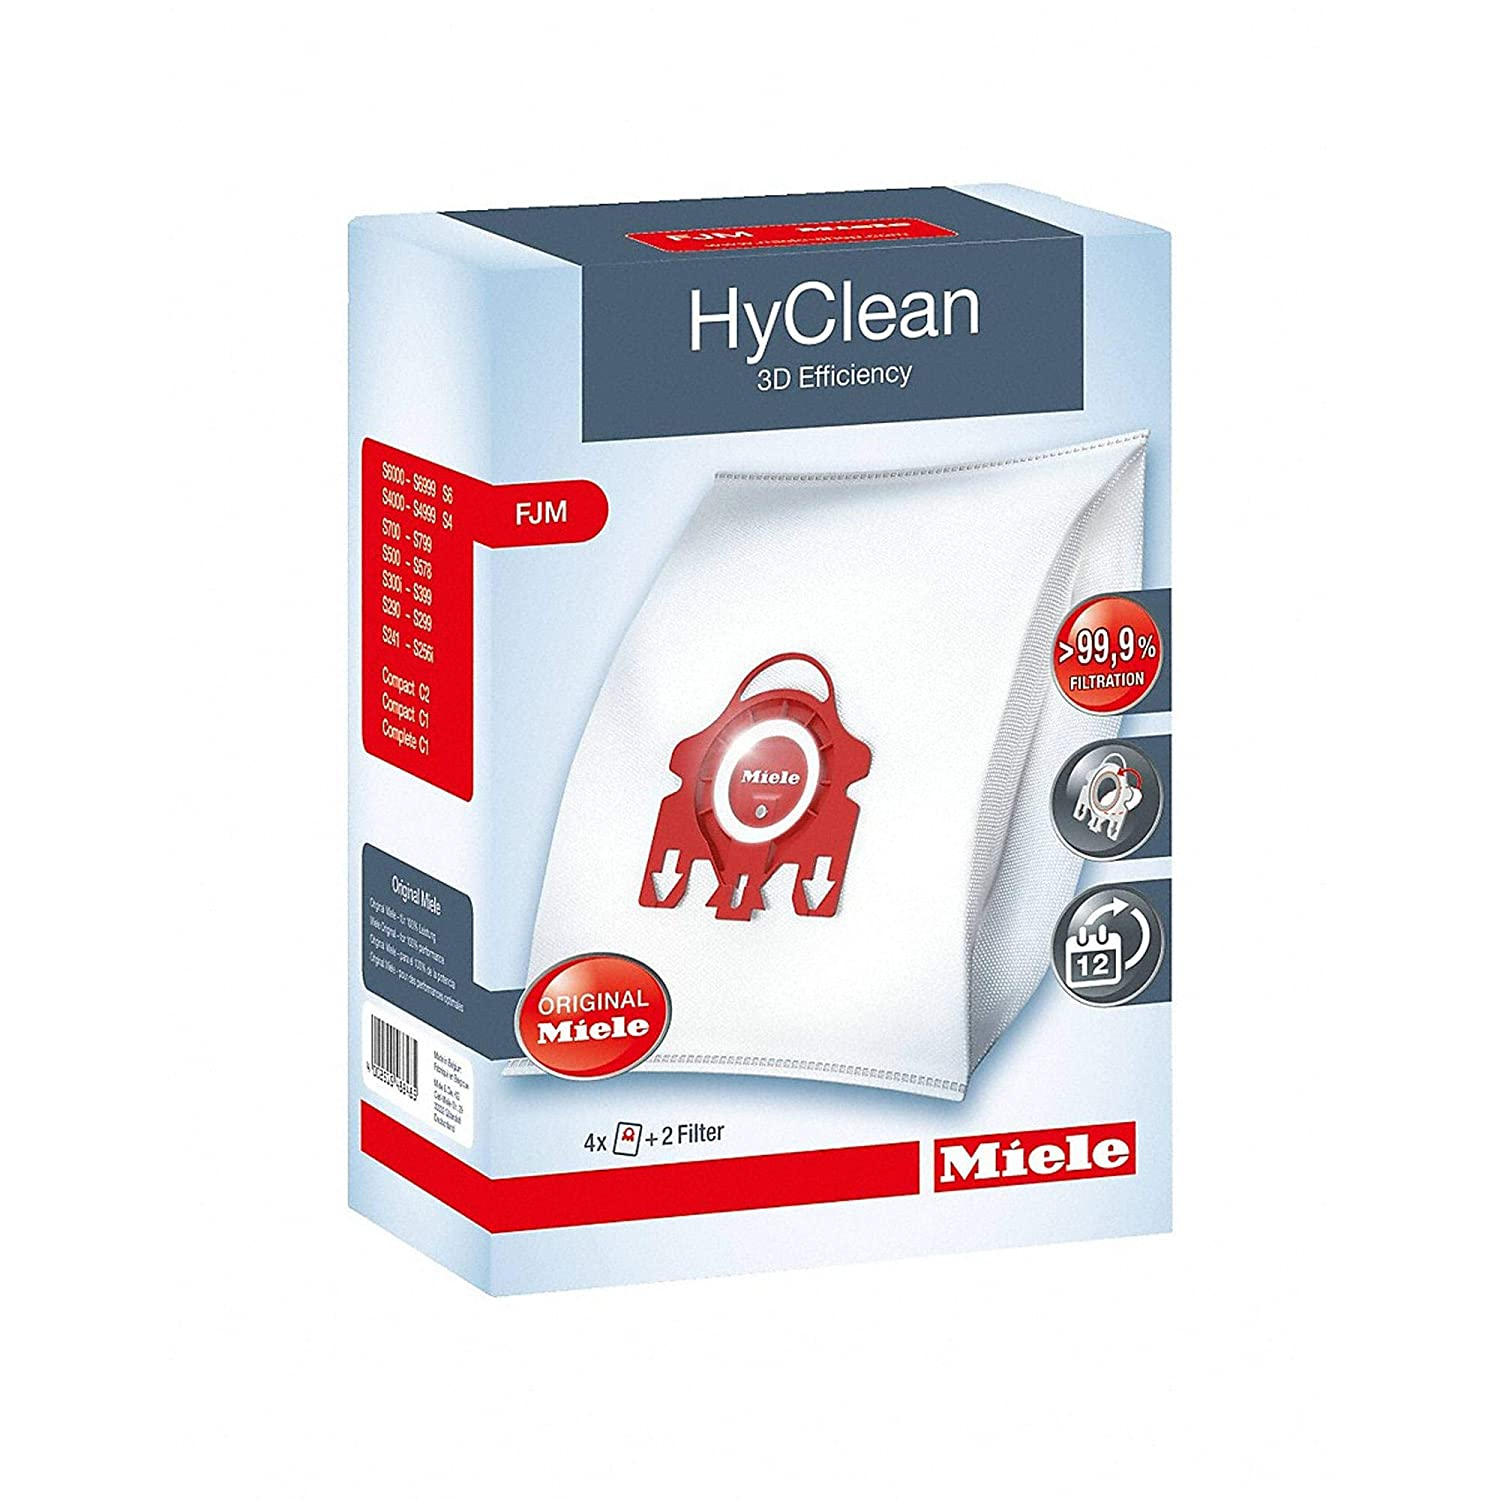 Miele Type FJM 3D Efficiency HyClean Dust Bag